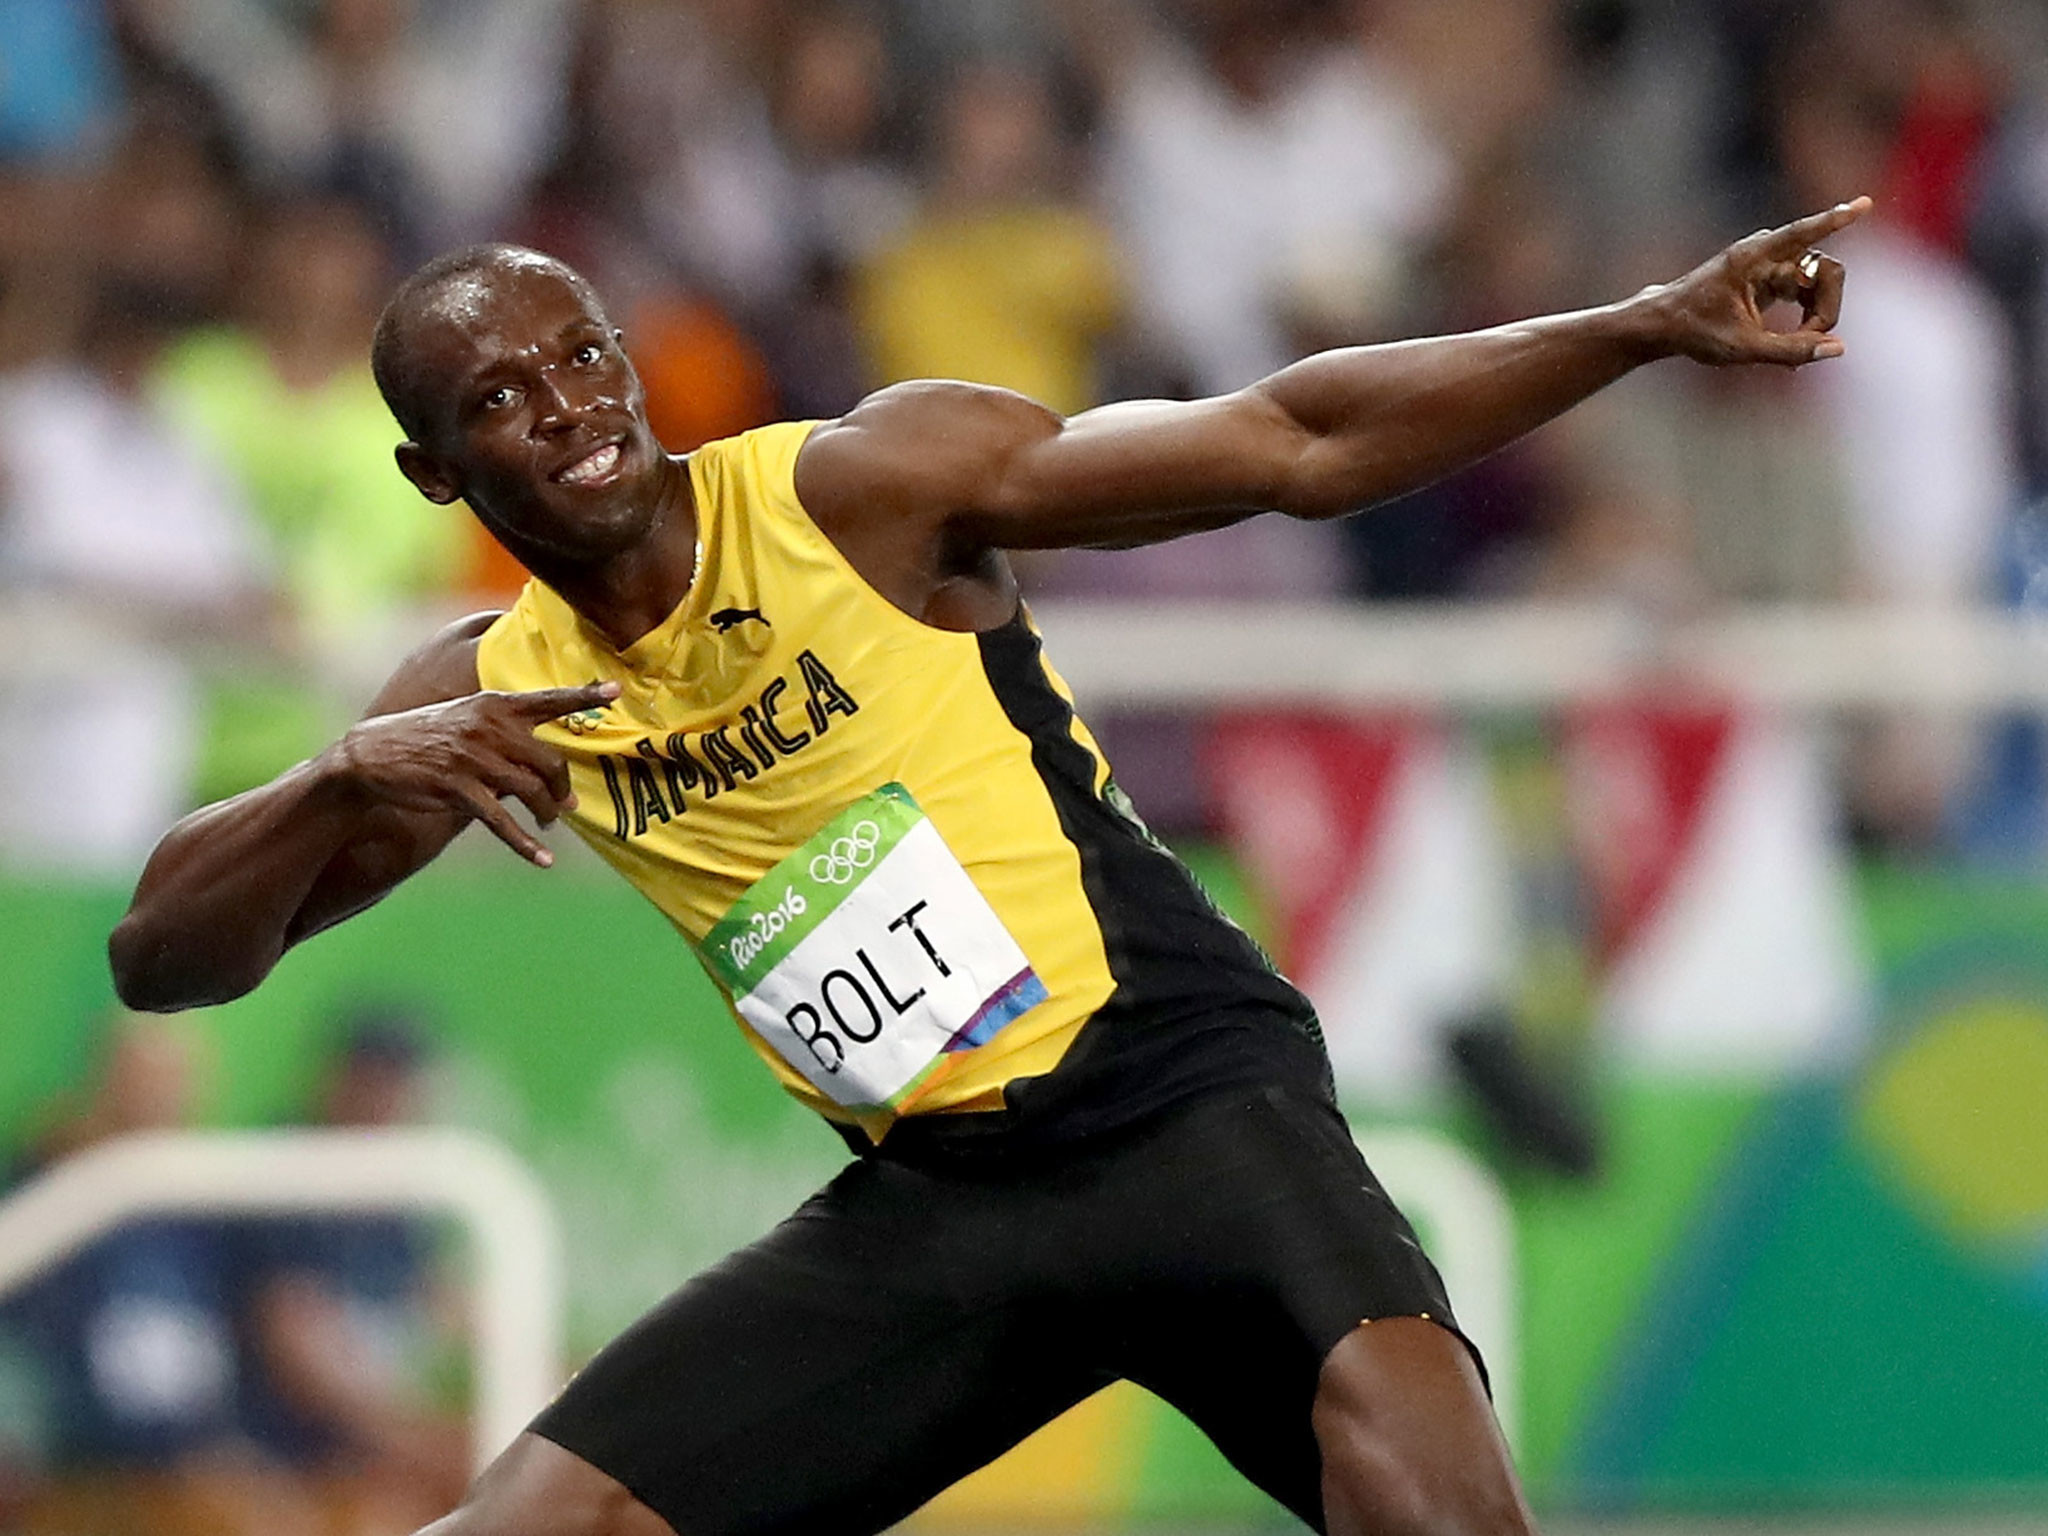 2048x1536 Rio 2016 200m: Usain Bolt wins gold to remain on course for Olympic 'triple  triple' | The Independent